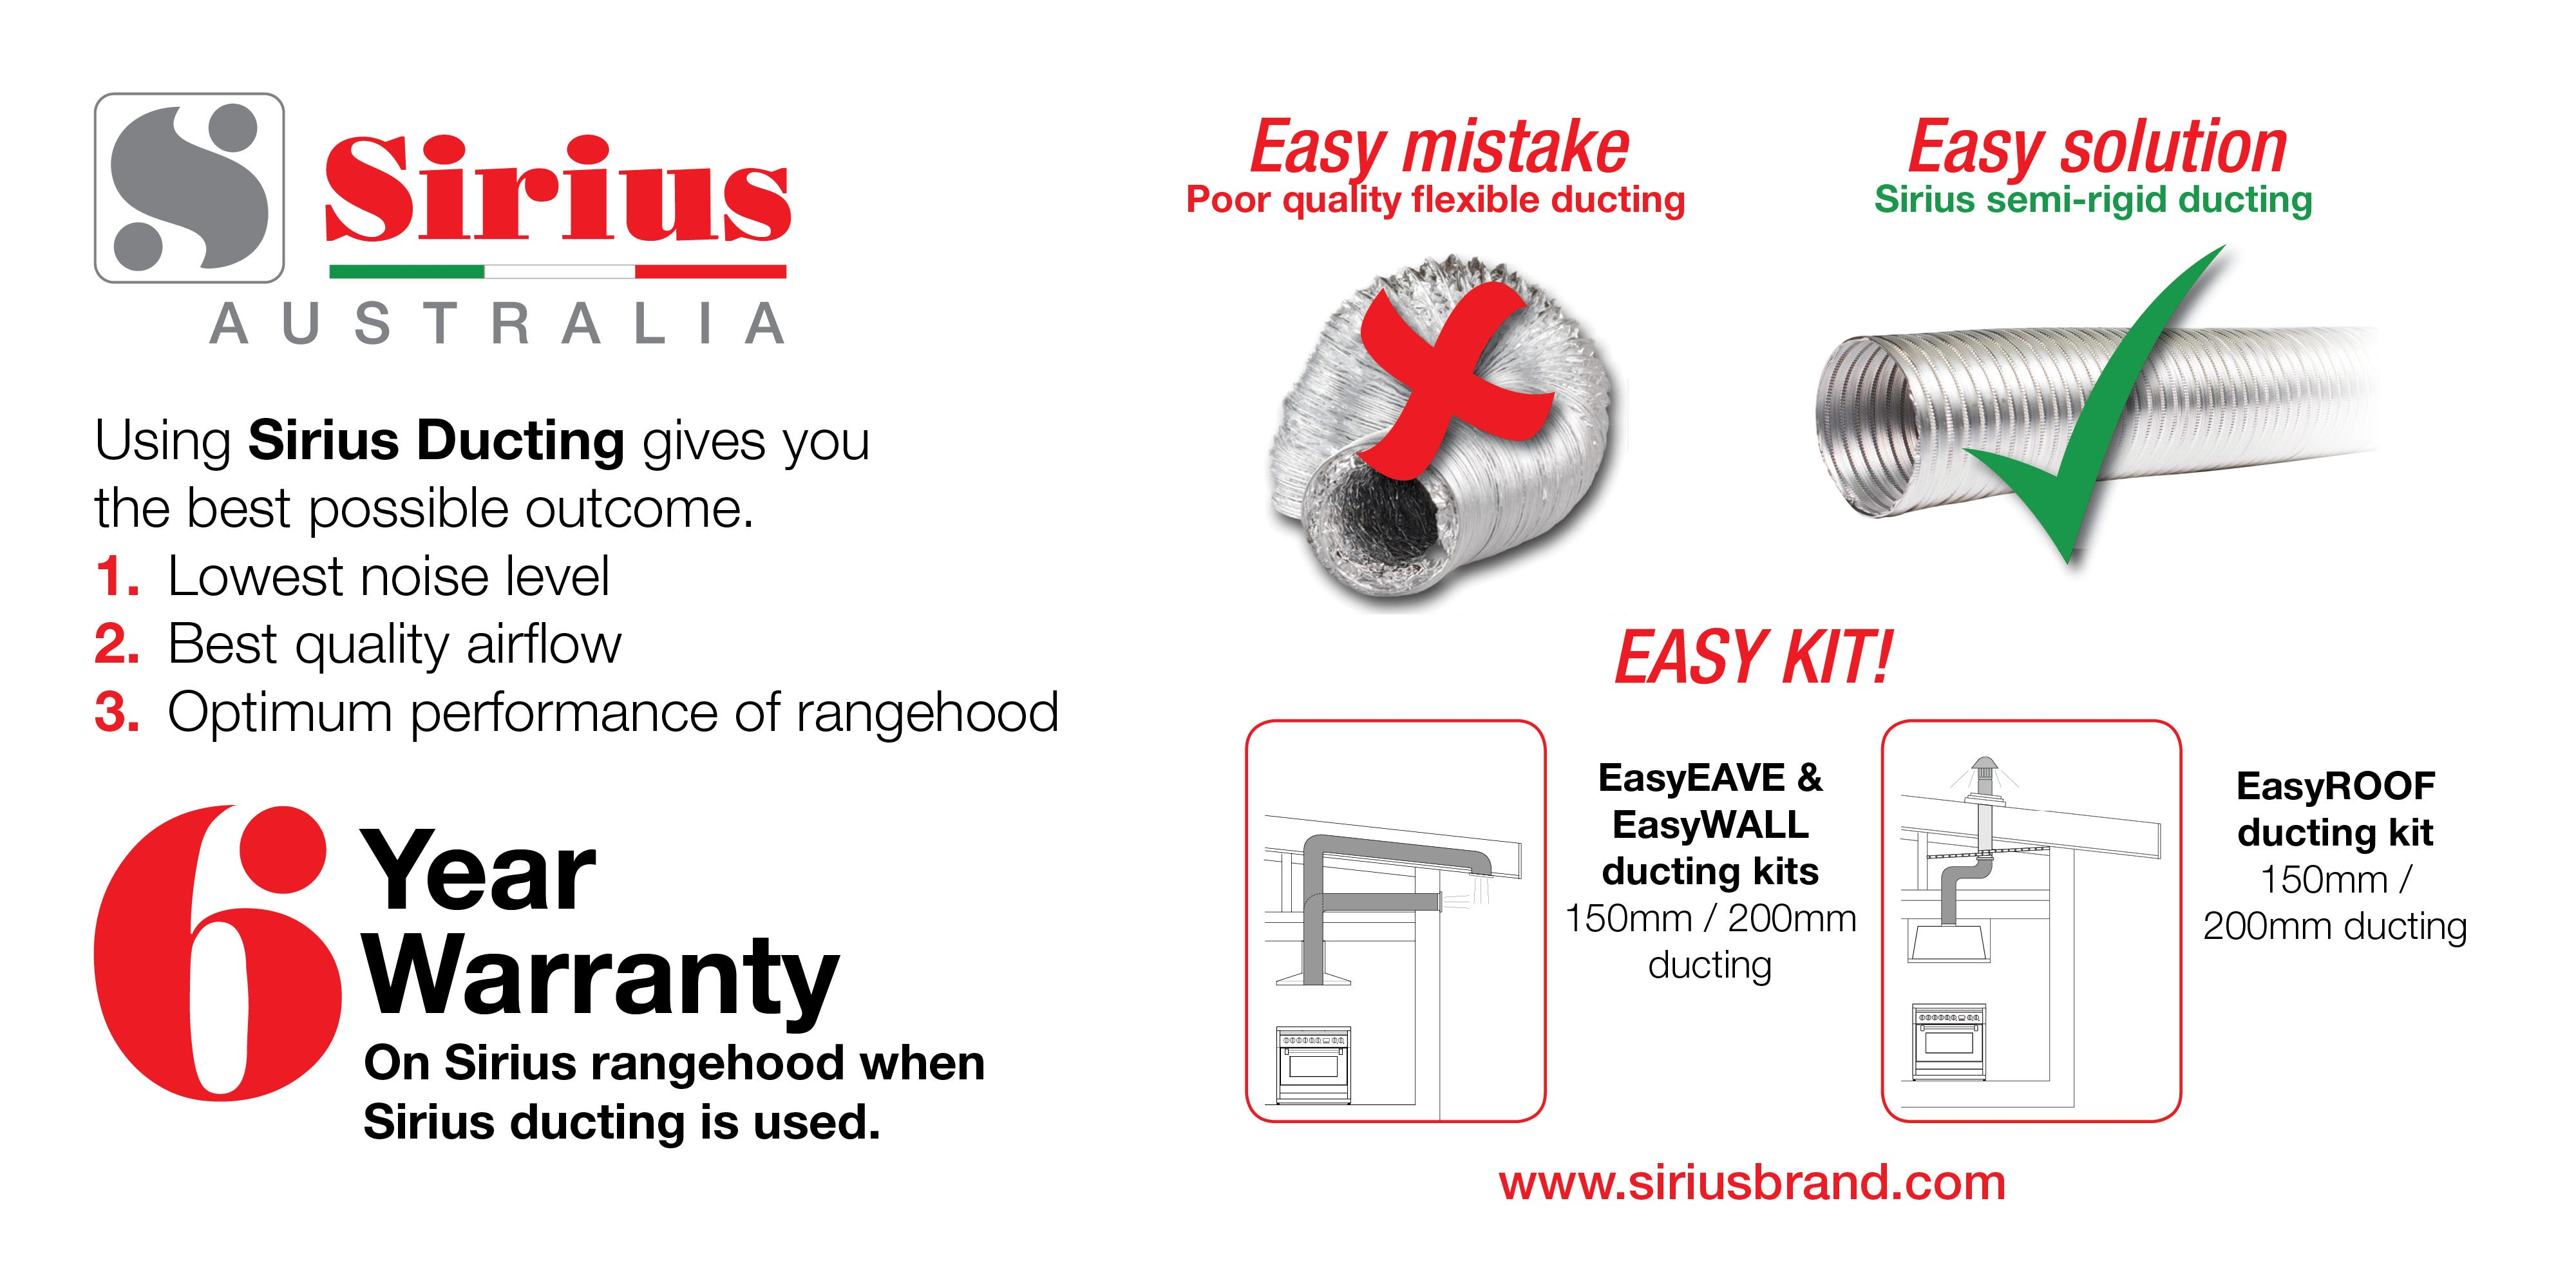 Upgrade your Sirius Rangehood Warranty with Sirius Ducting at e&s. Enquire within.